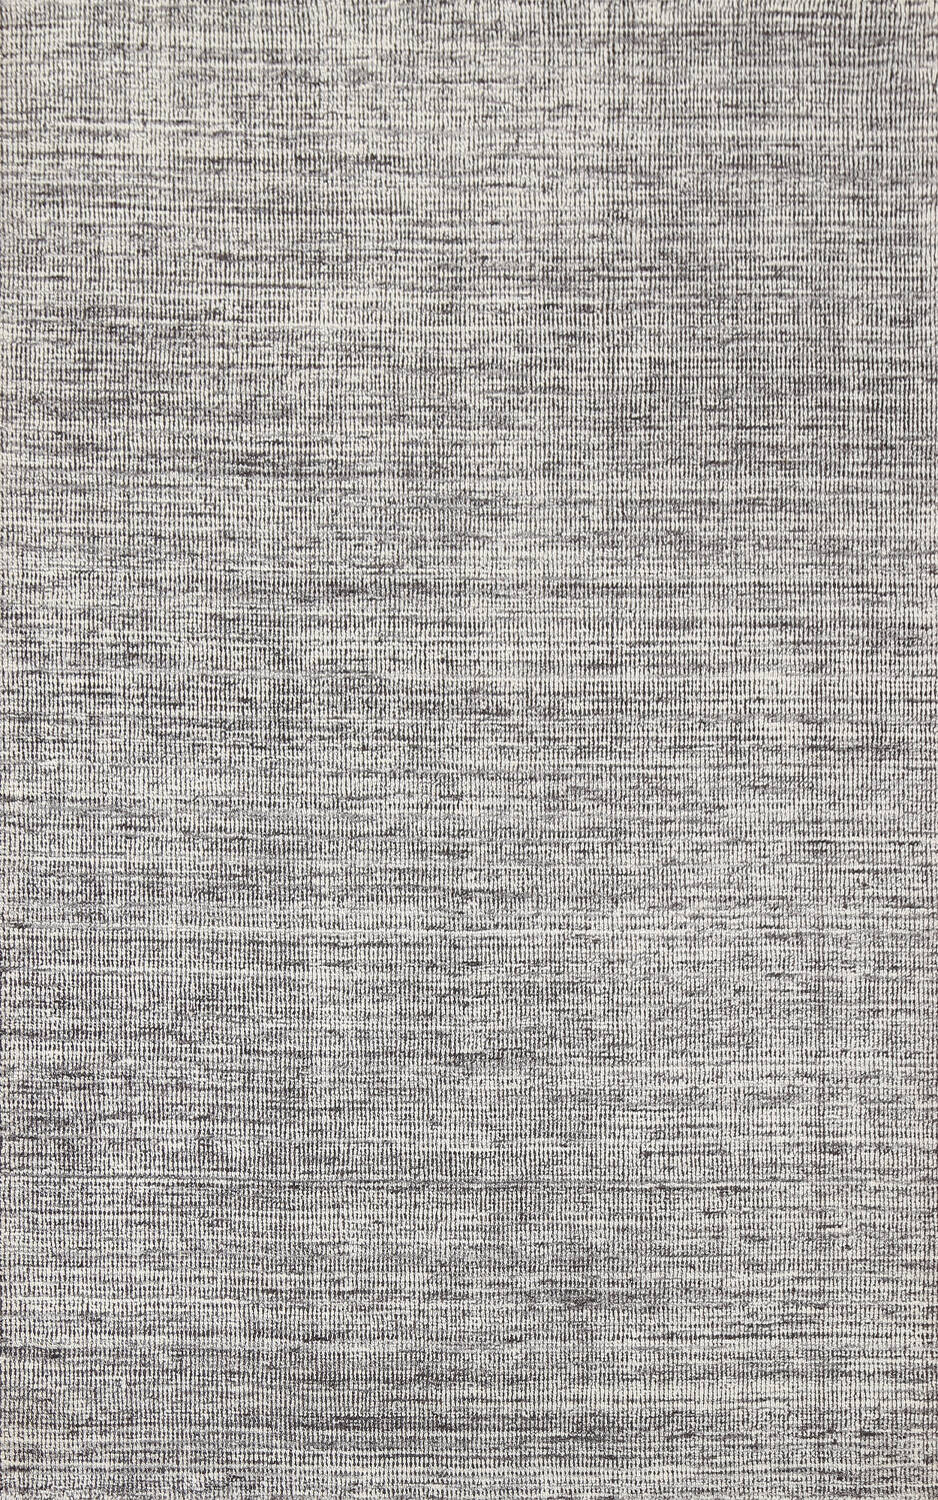 Abstract Gabbeh Wool Area Rug 5x8 image 1